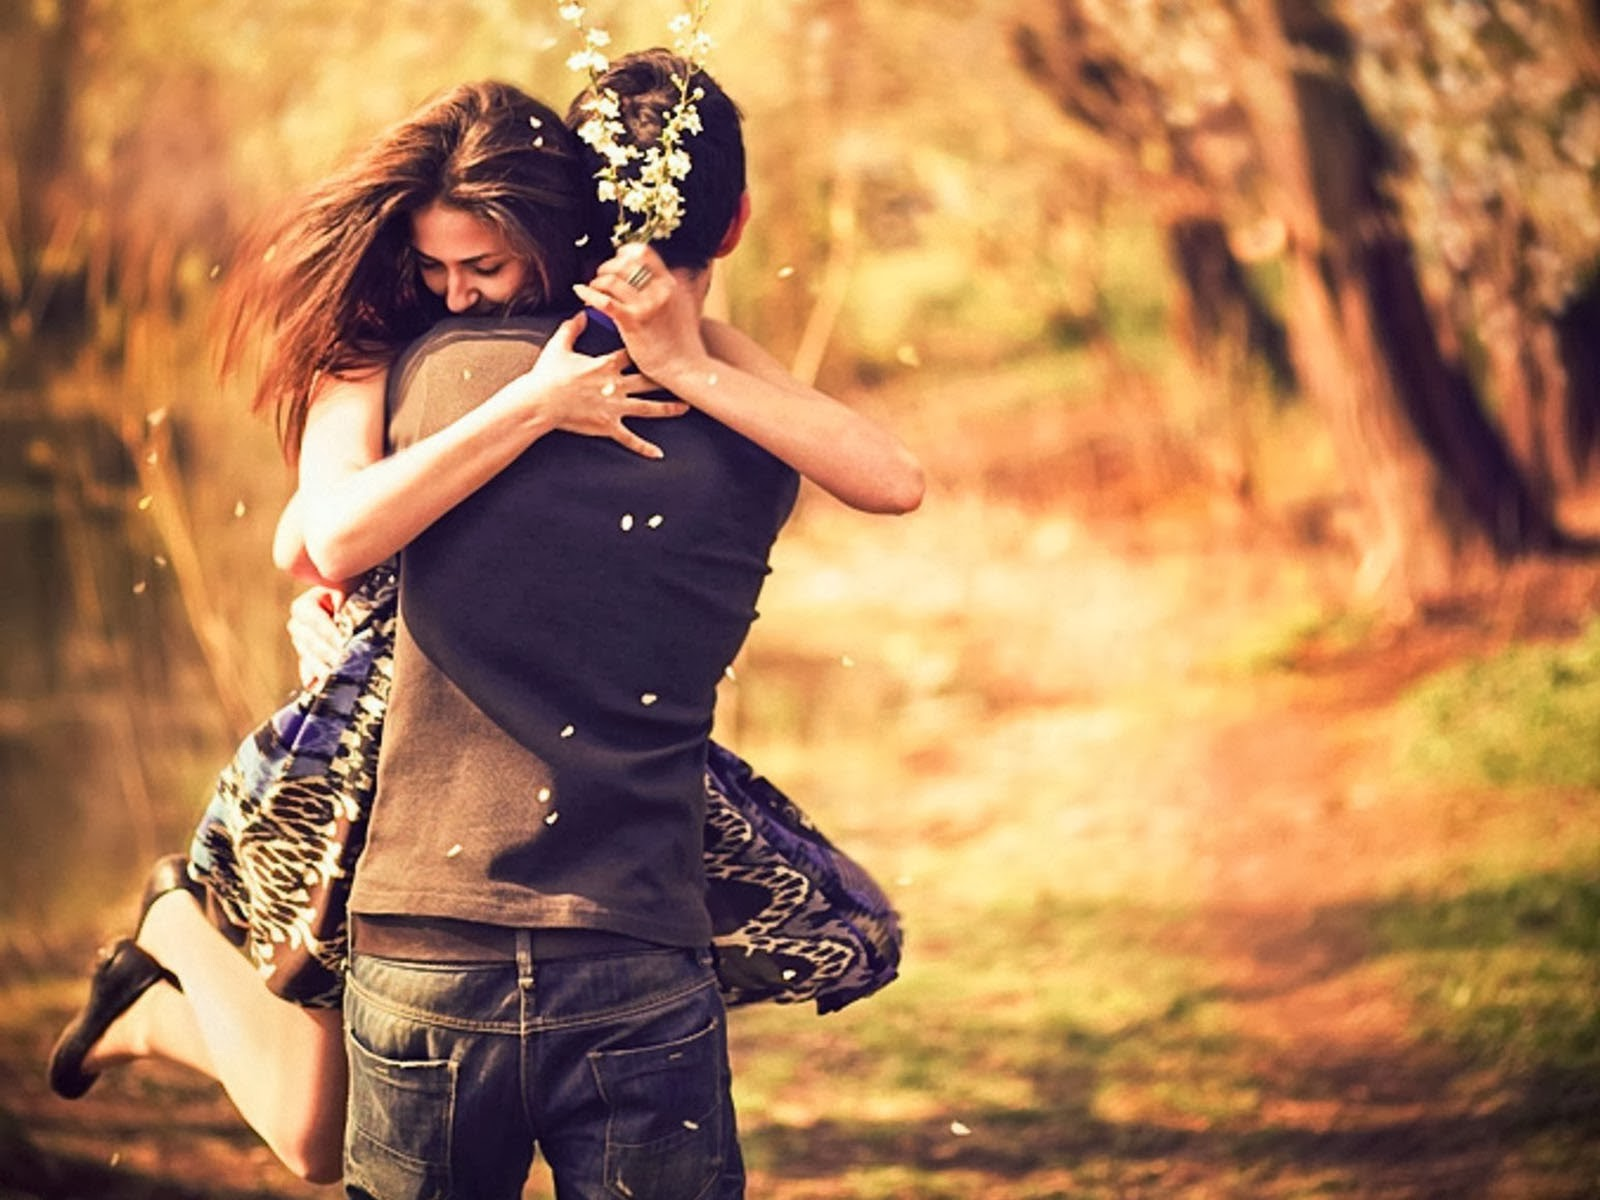 How To Find A Real Love In Your Life For Real